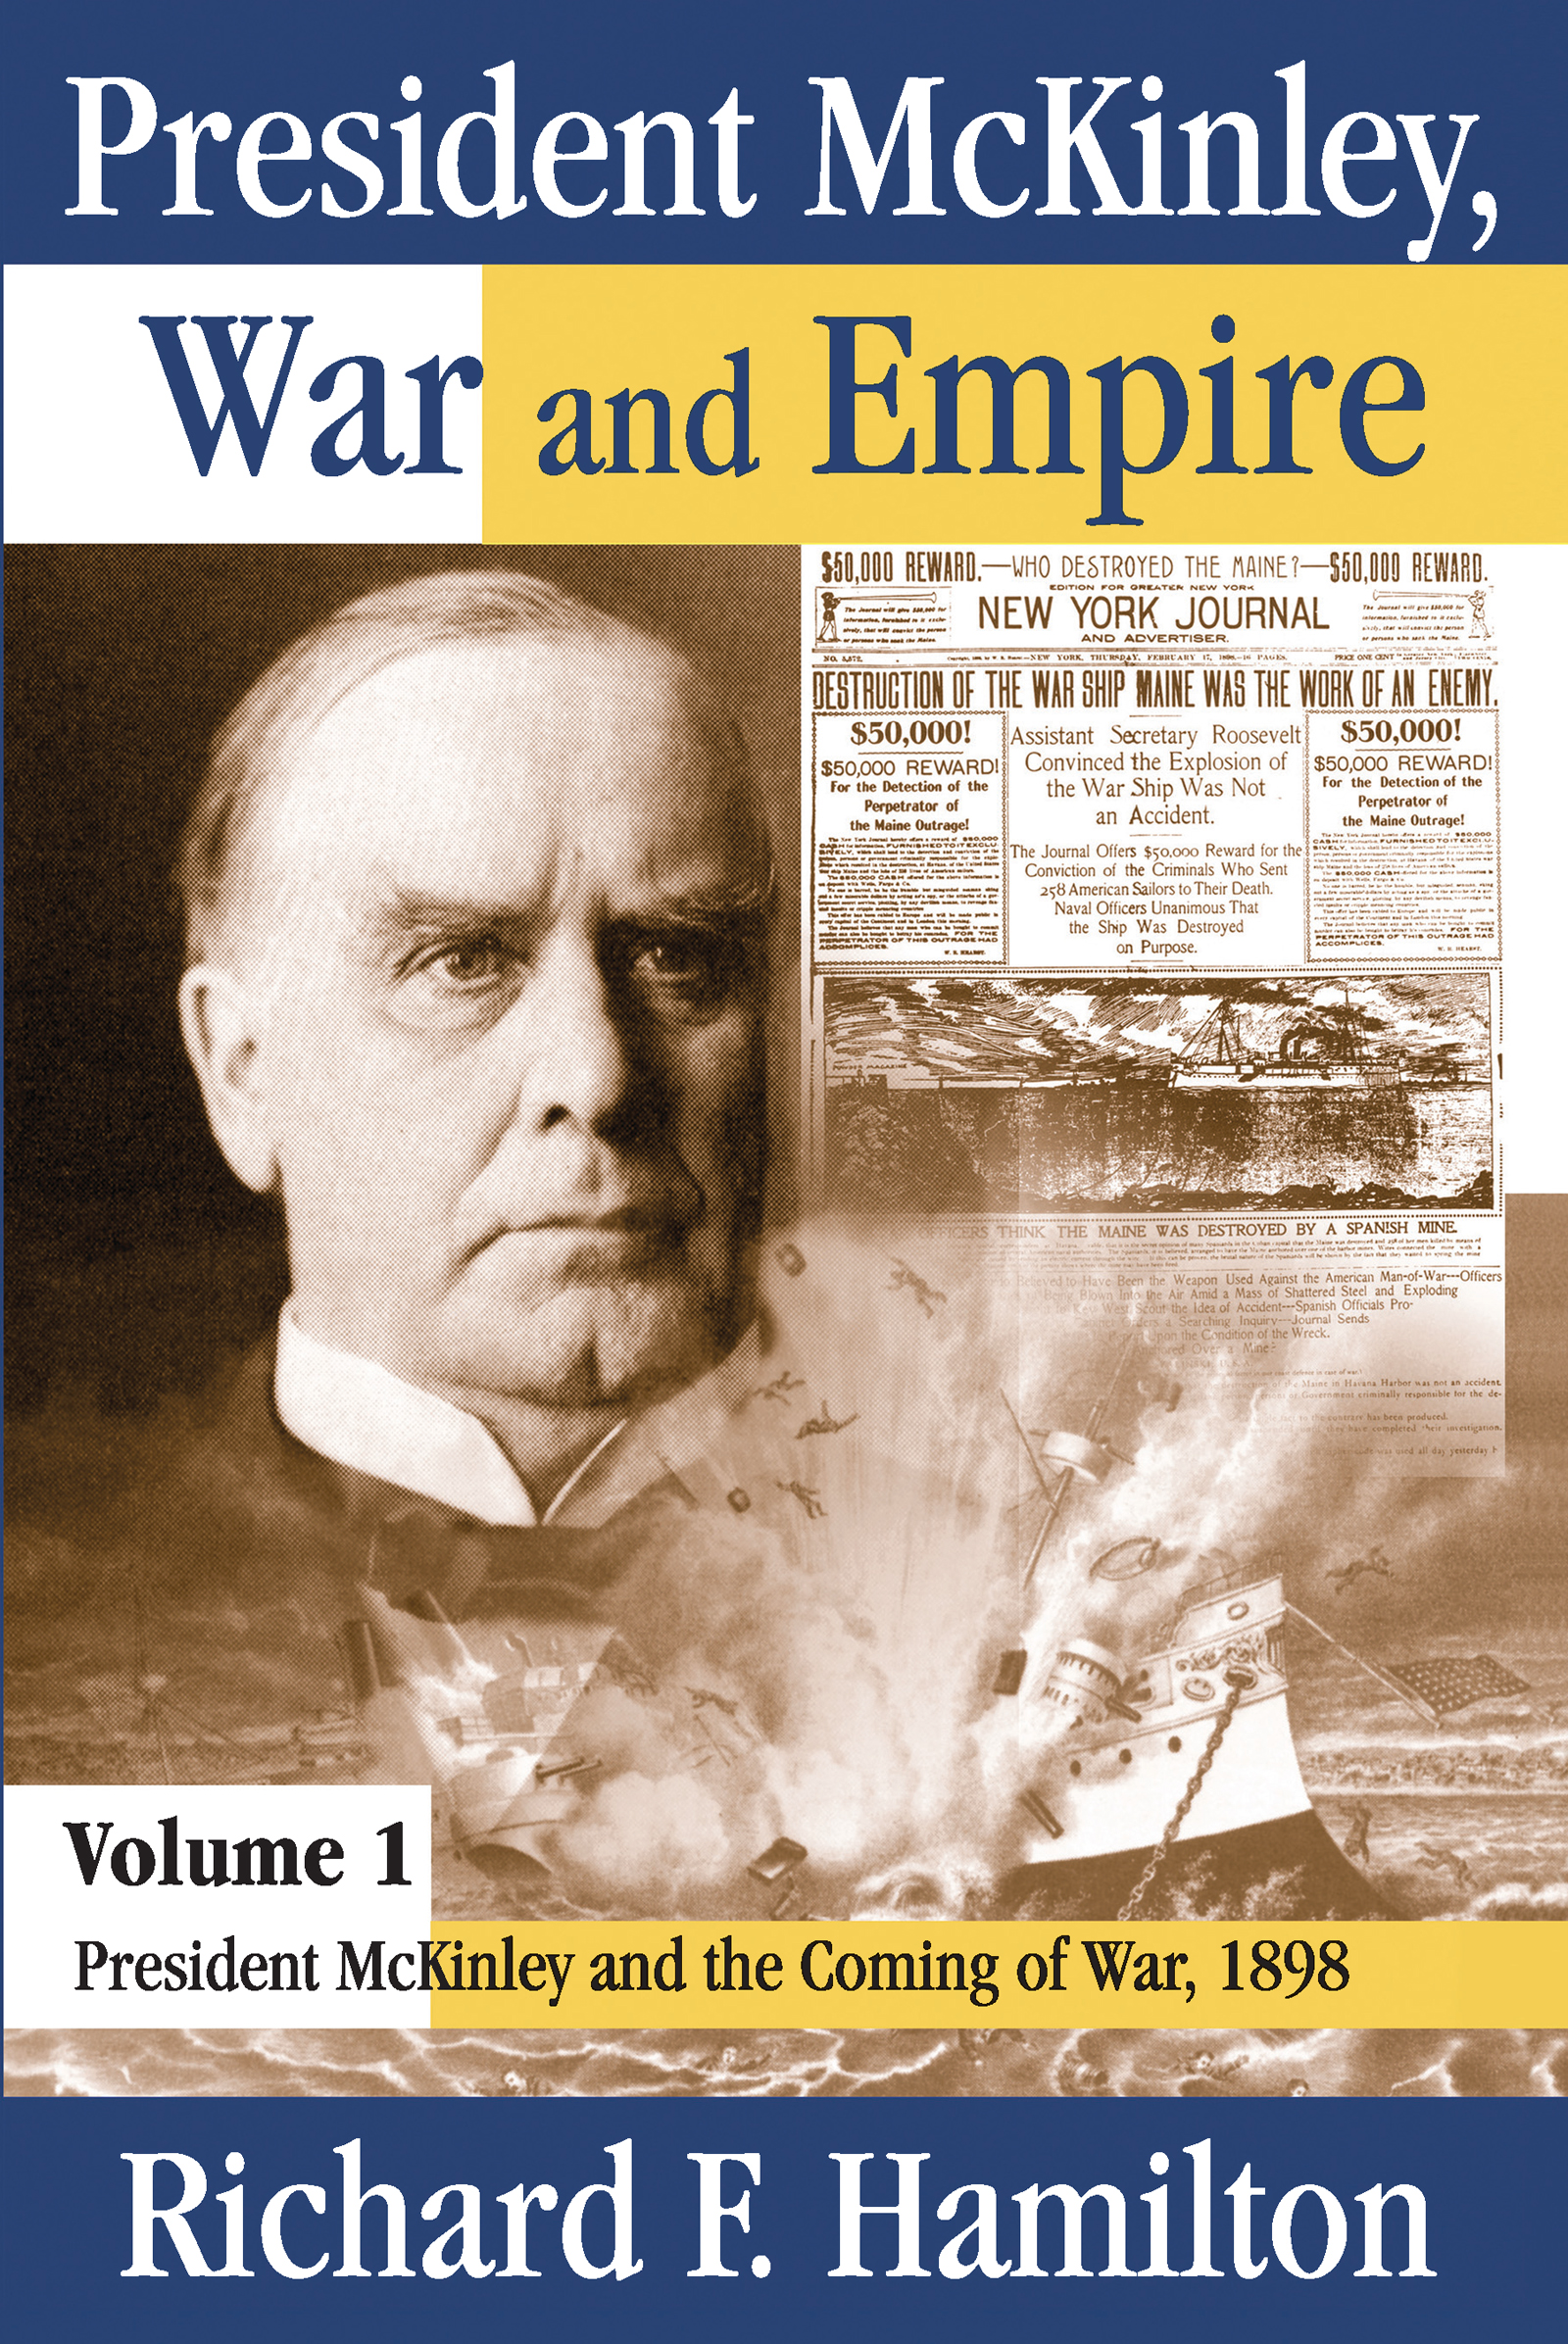 President McKinley, War and Empire: President McKinley and the Coming of War, 1898 book cover